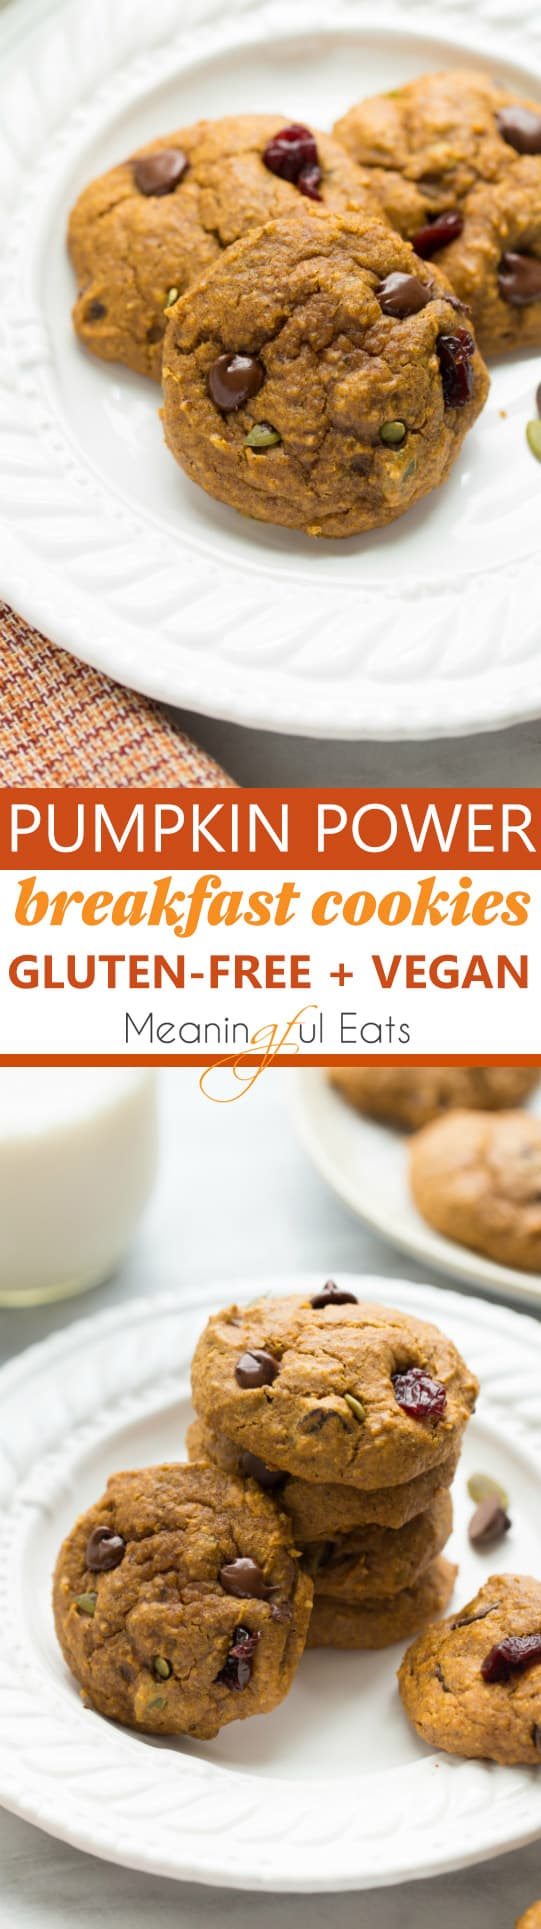 Pumpkin Power Breakfast Cookies! Healthy, gluten-free and vegan cookies. Delicious and kid-friendly!